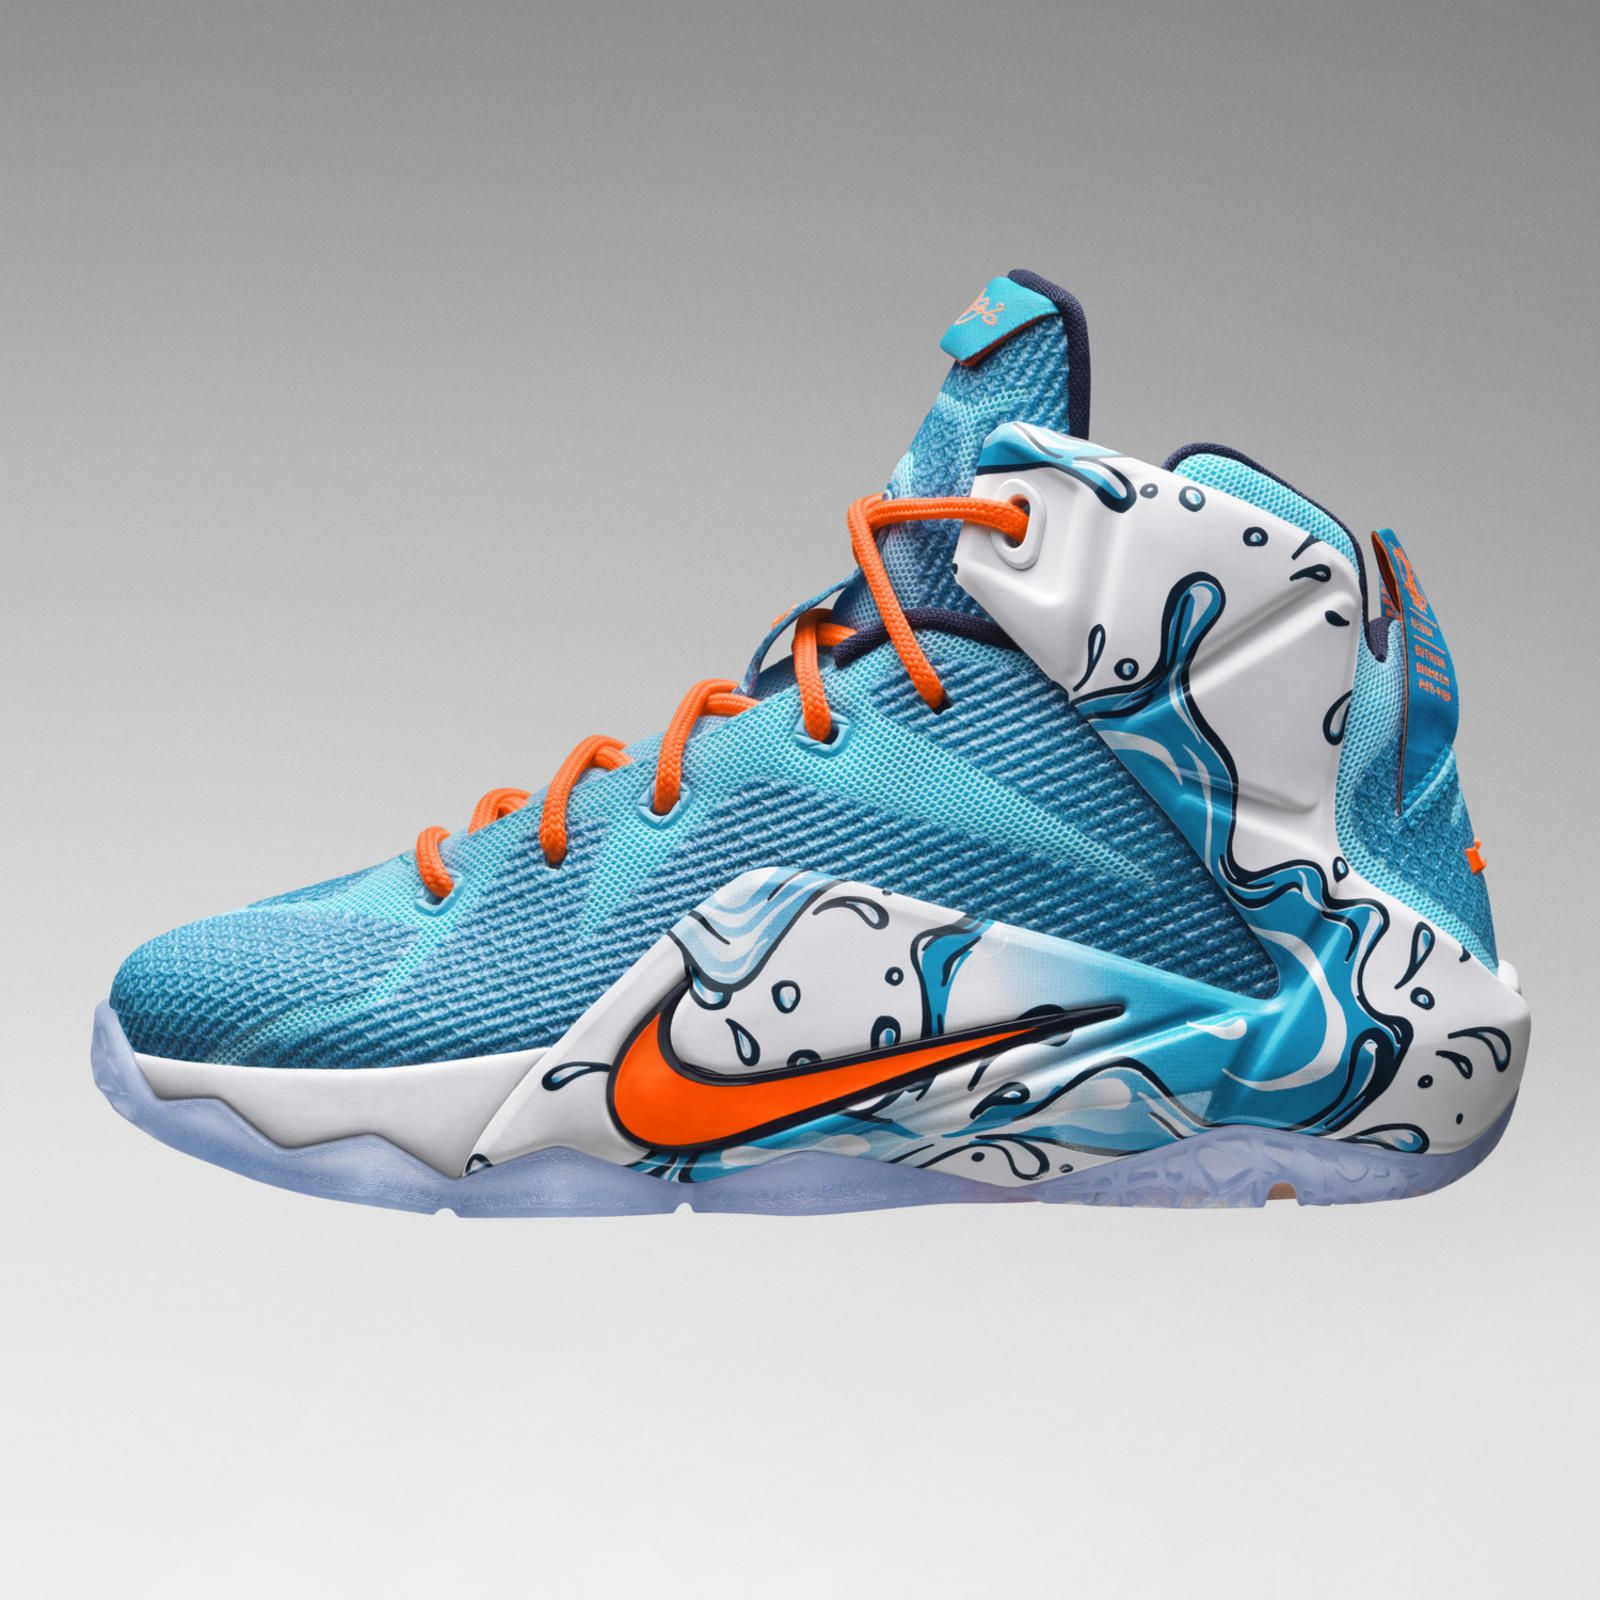 41a0b99a51db Nike News - Make a Splash With LeBron and Kobe  The Summer Time Fun Pack  Exclusive For Kids